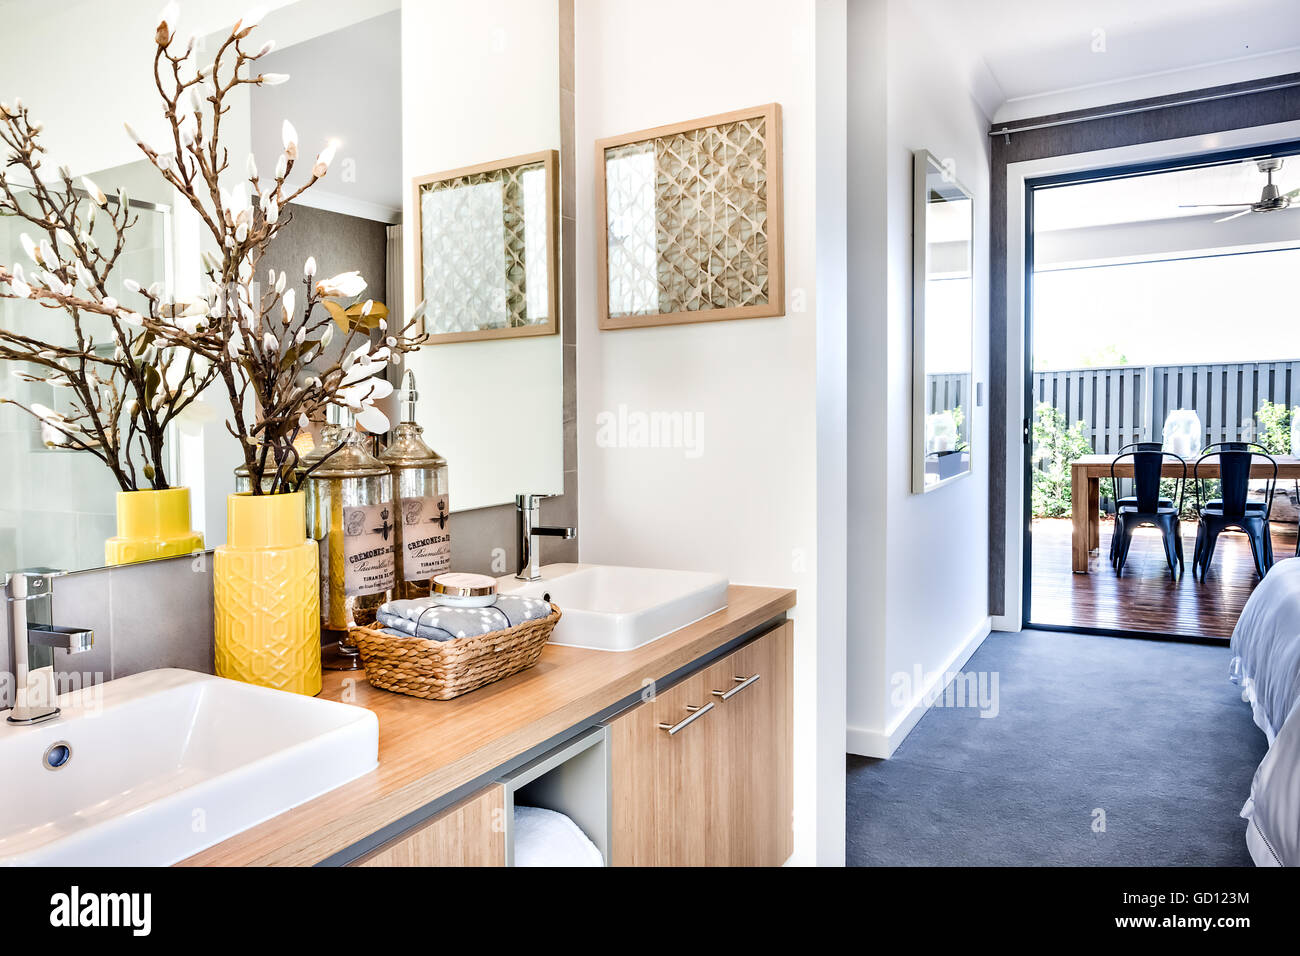 Washroom Outside Stock Photos & Washroom Outside Stock Images - Alamy